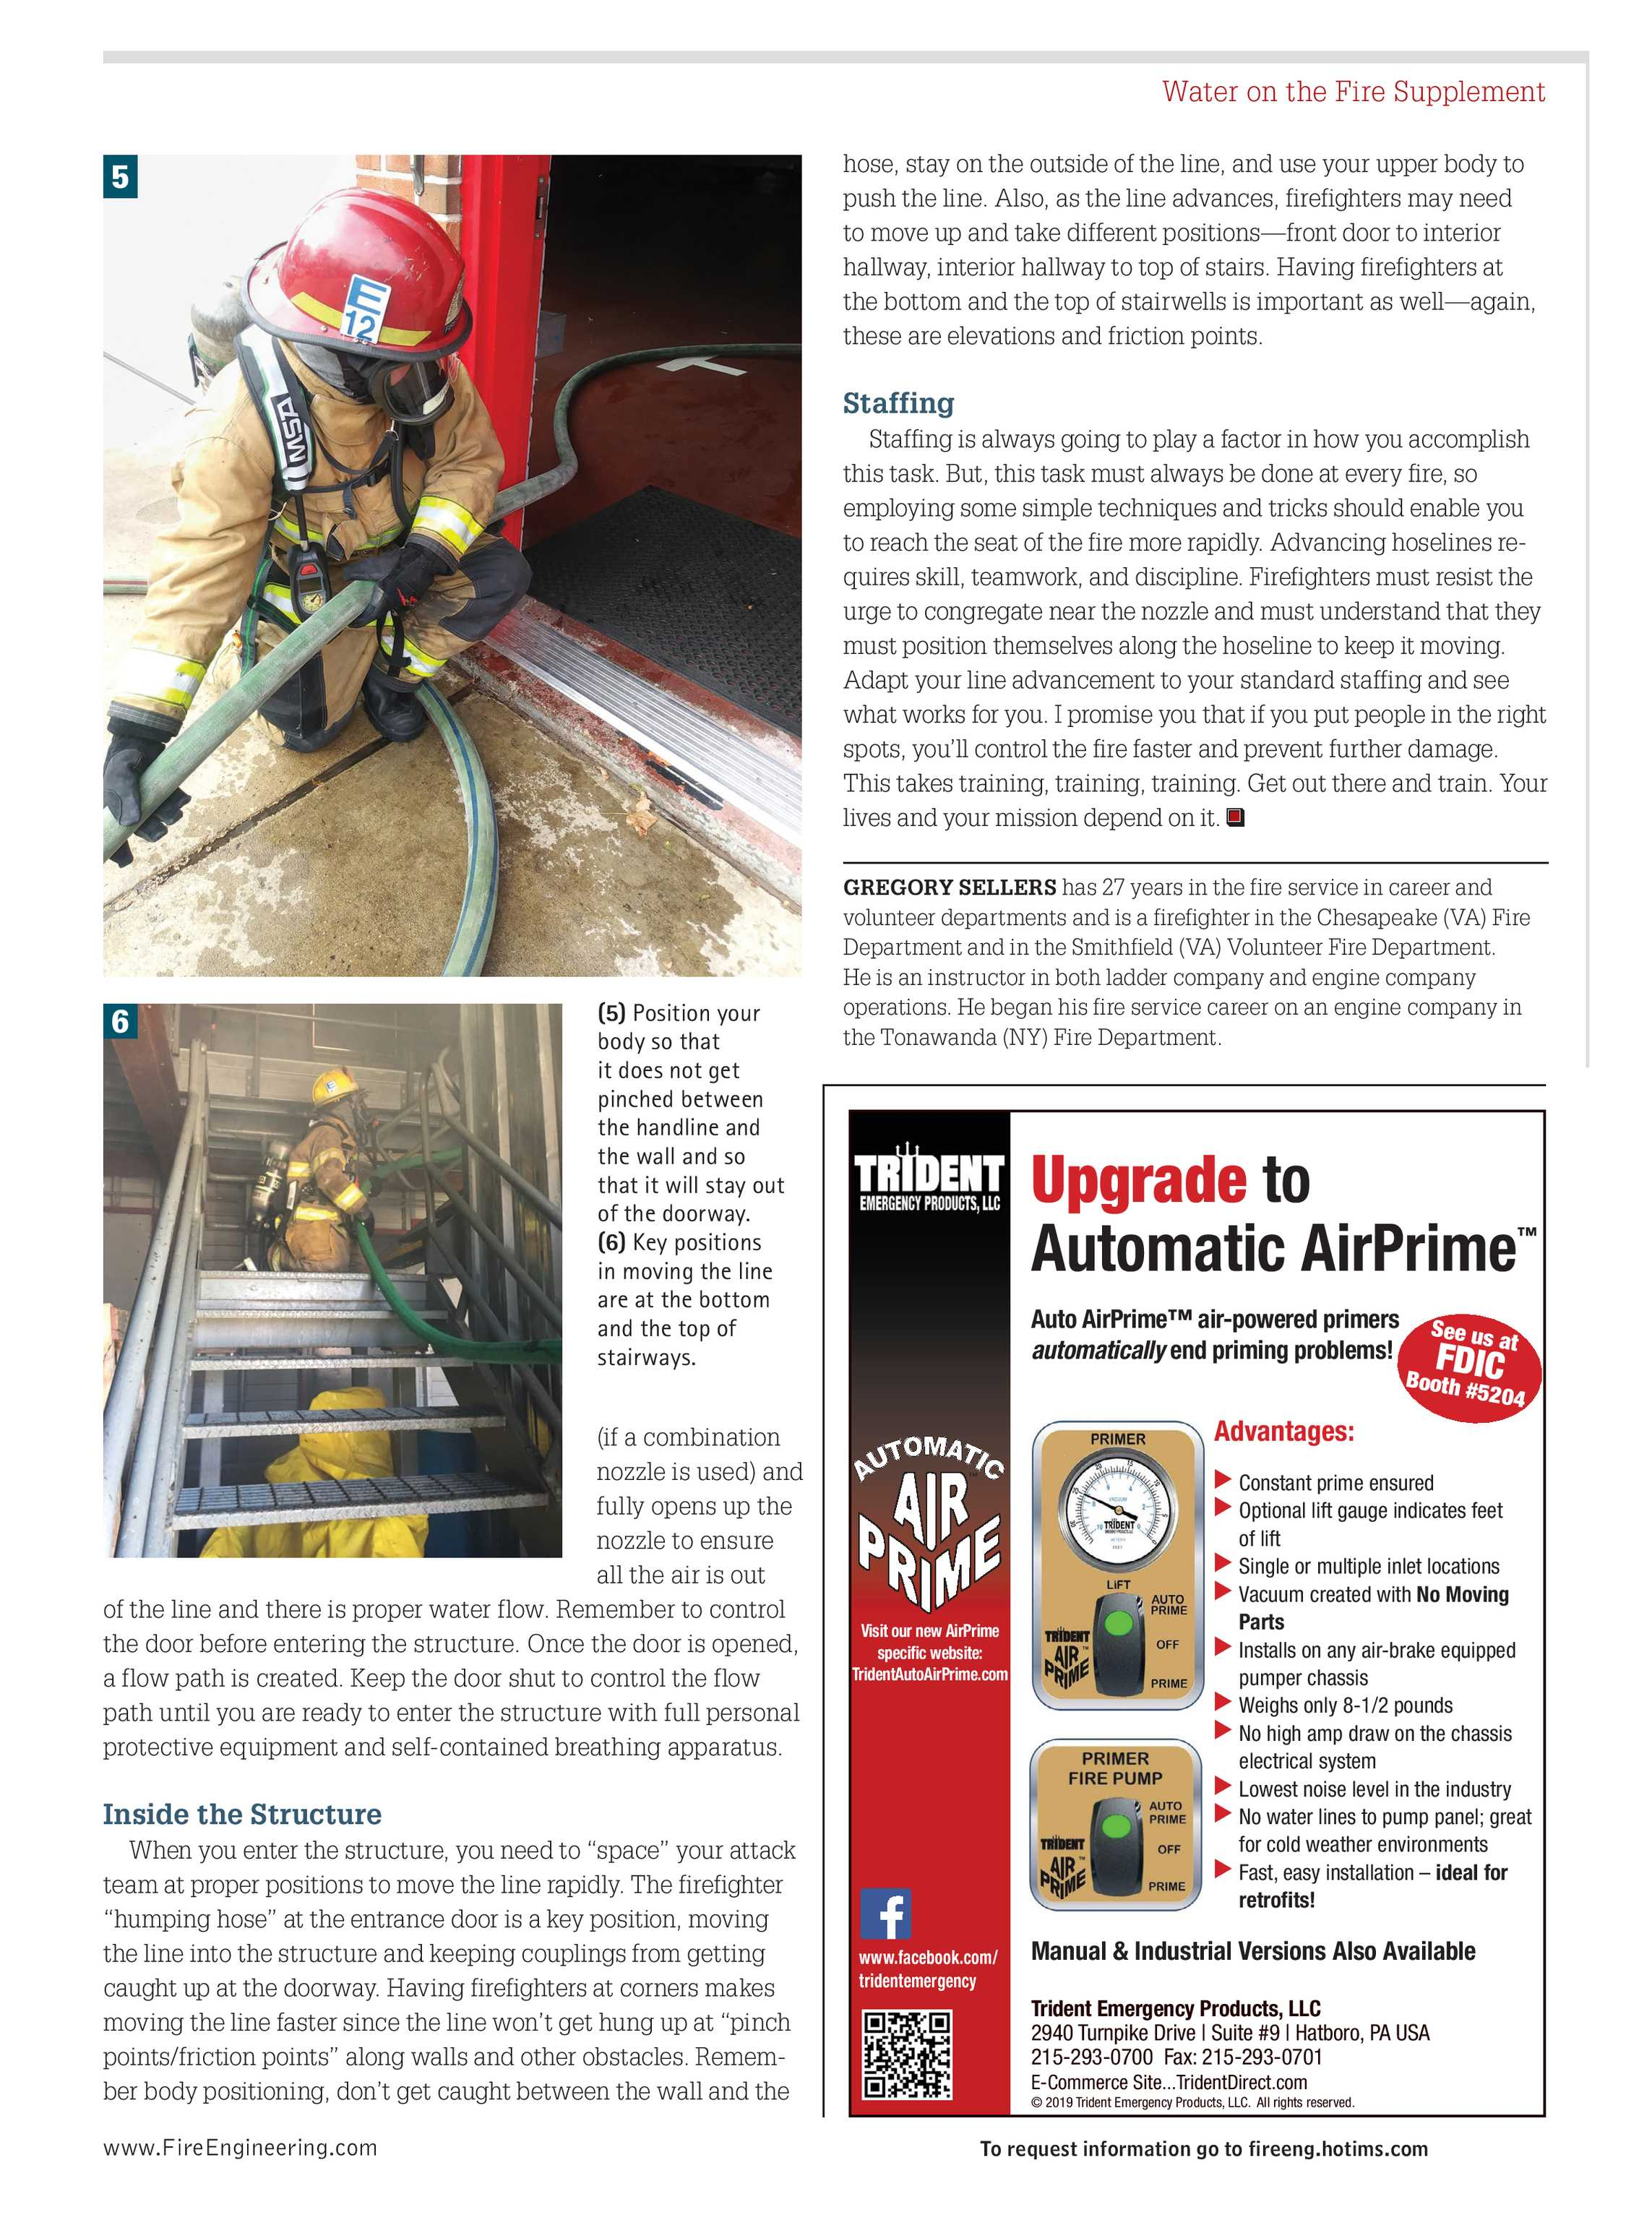 Pennwell Supplements - FE February 2019 Water on the Fire Supplement on